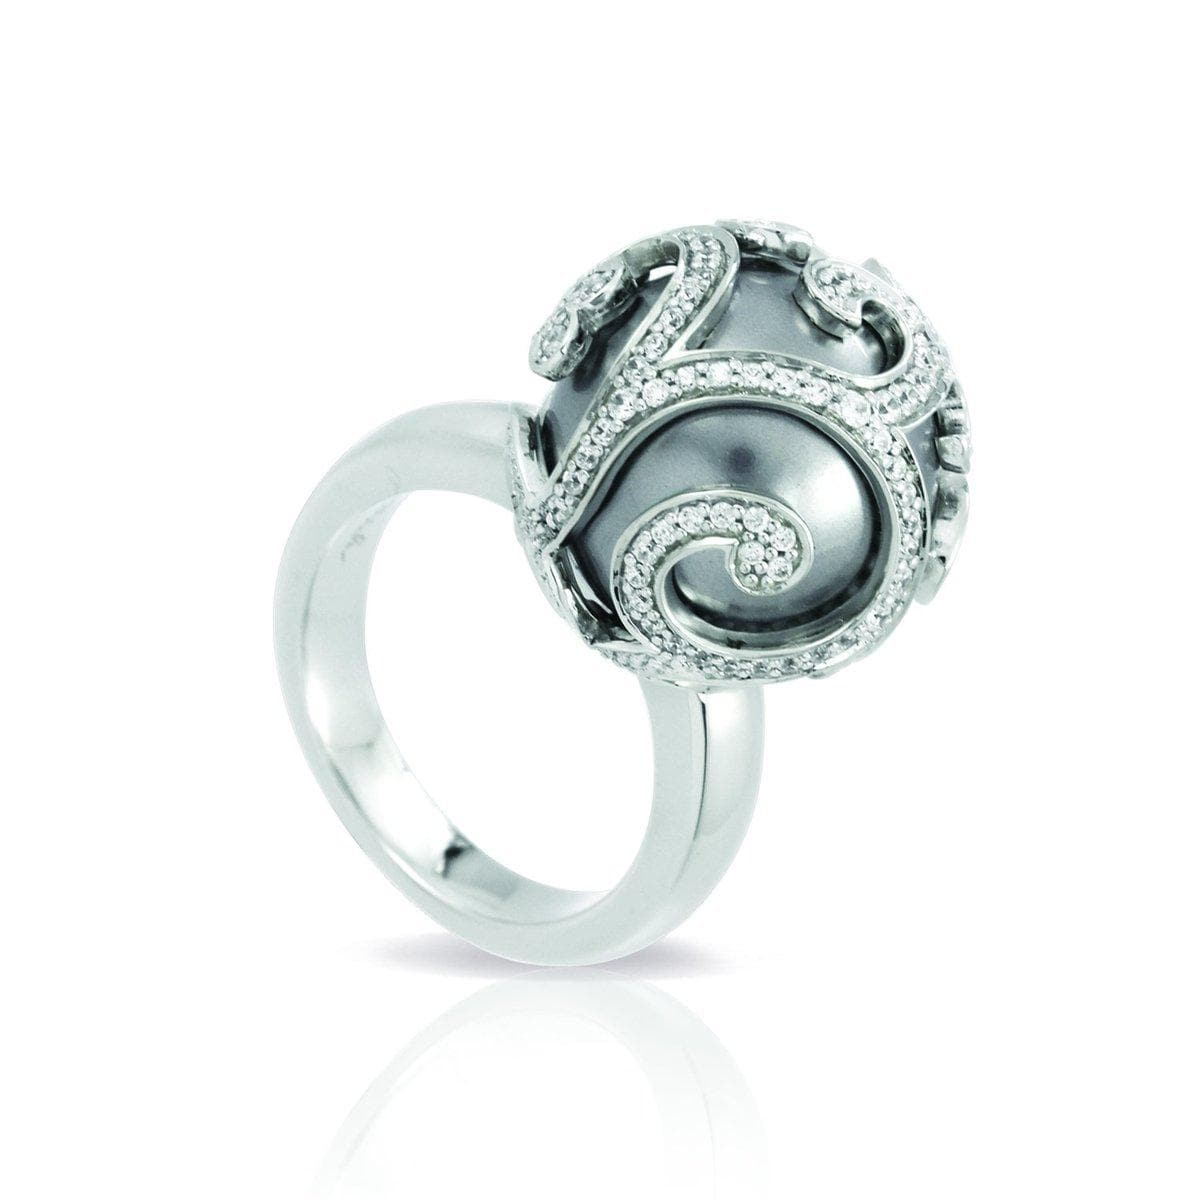 Beauty Bound Grey Ring-Belle Etoile-Renee Taylor Gallery